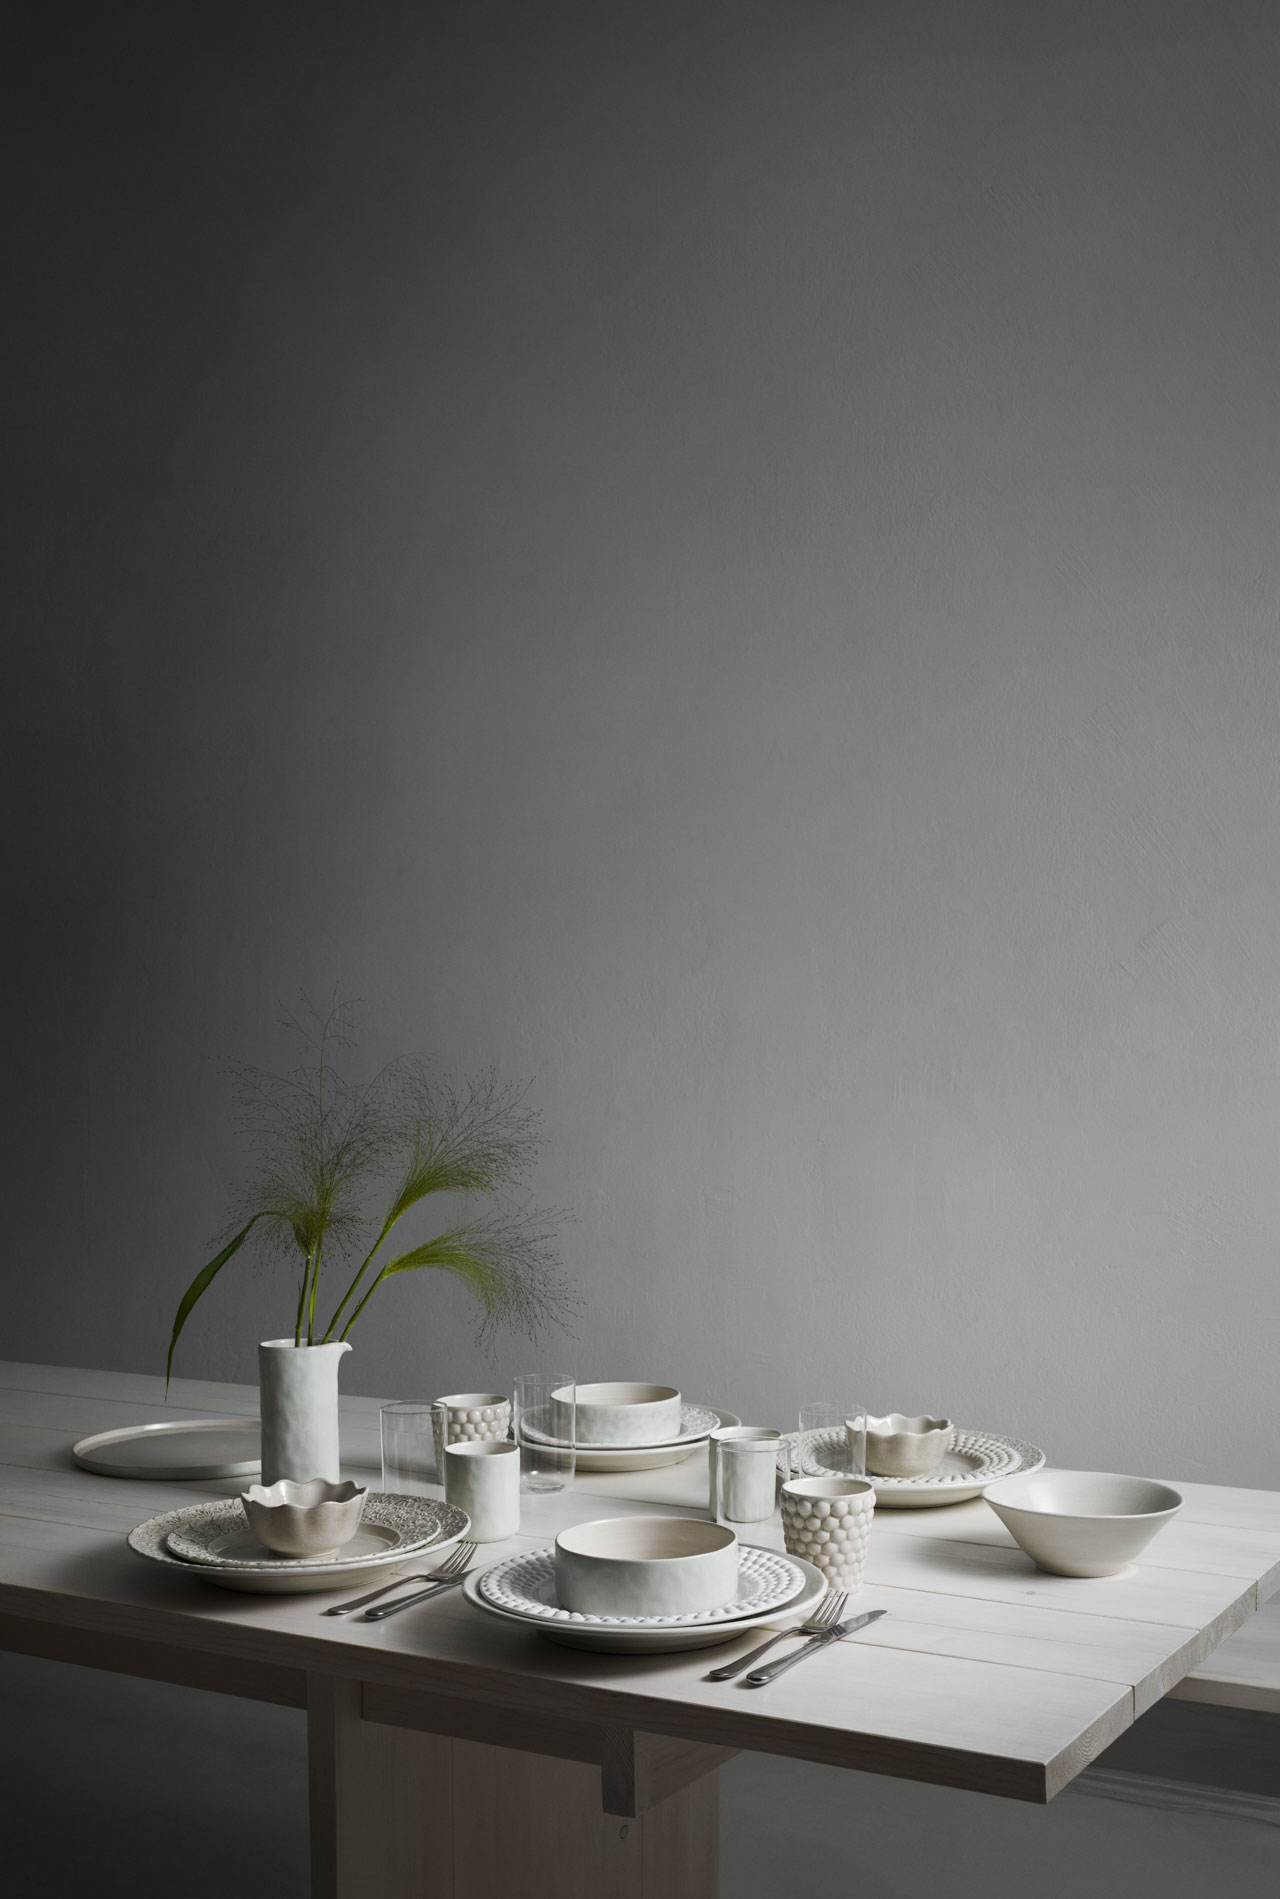 "The Lace, the Bubbles, the Basic and the Perfectly Irregular Mateus ceramic tableware collections combined together with the new ""Mateus meets Sam Baron meets Yatzer"" .Styling by Lotta Agaton.Photo by Fabian Björnstjerna."